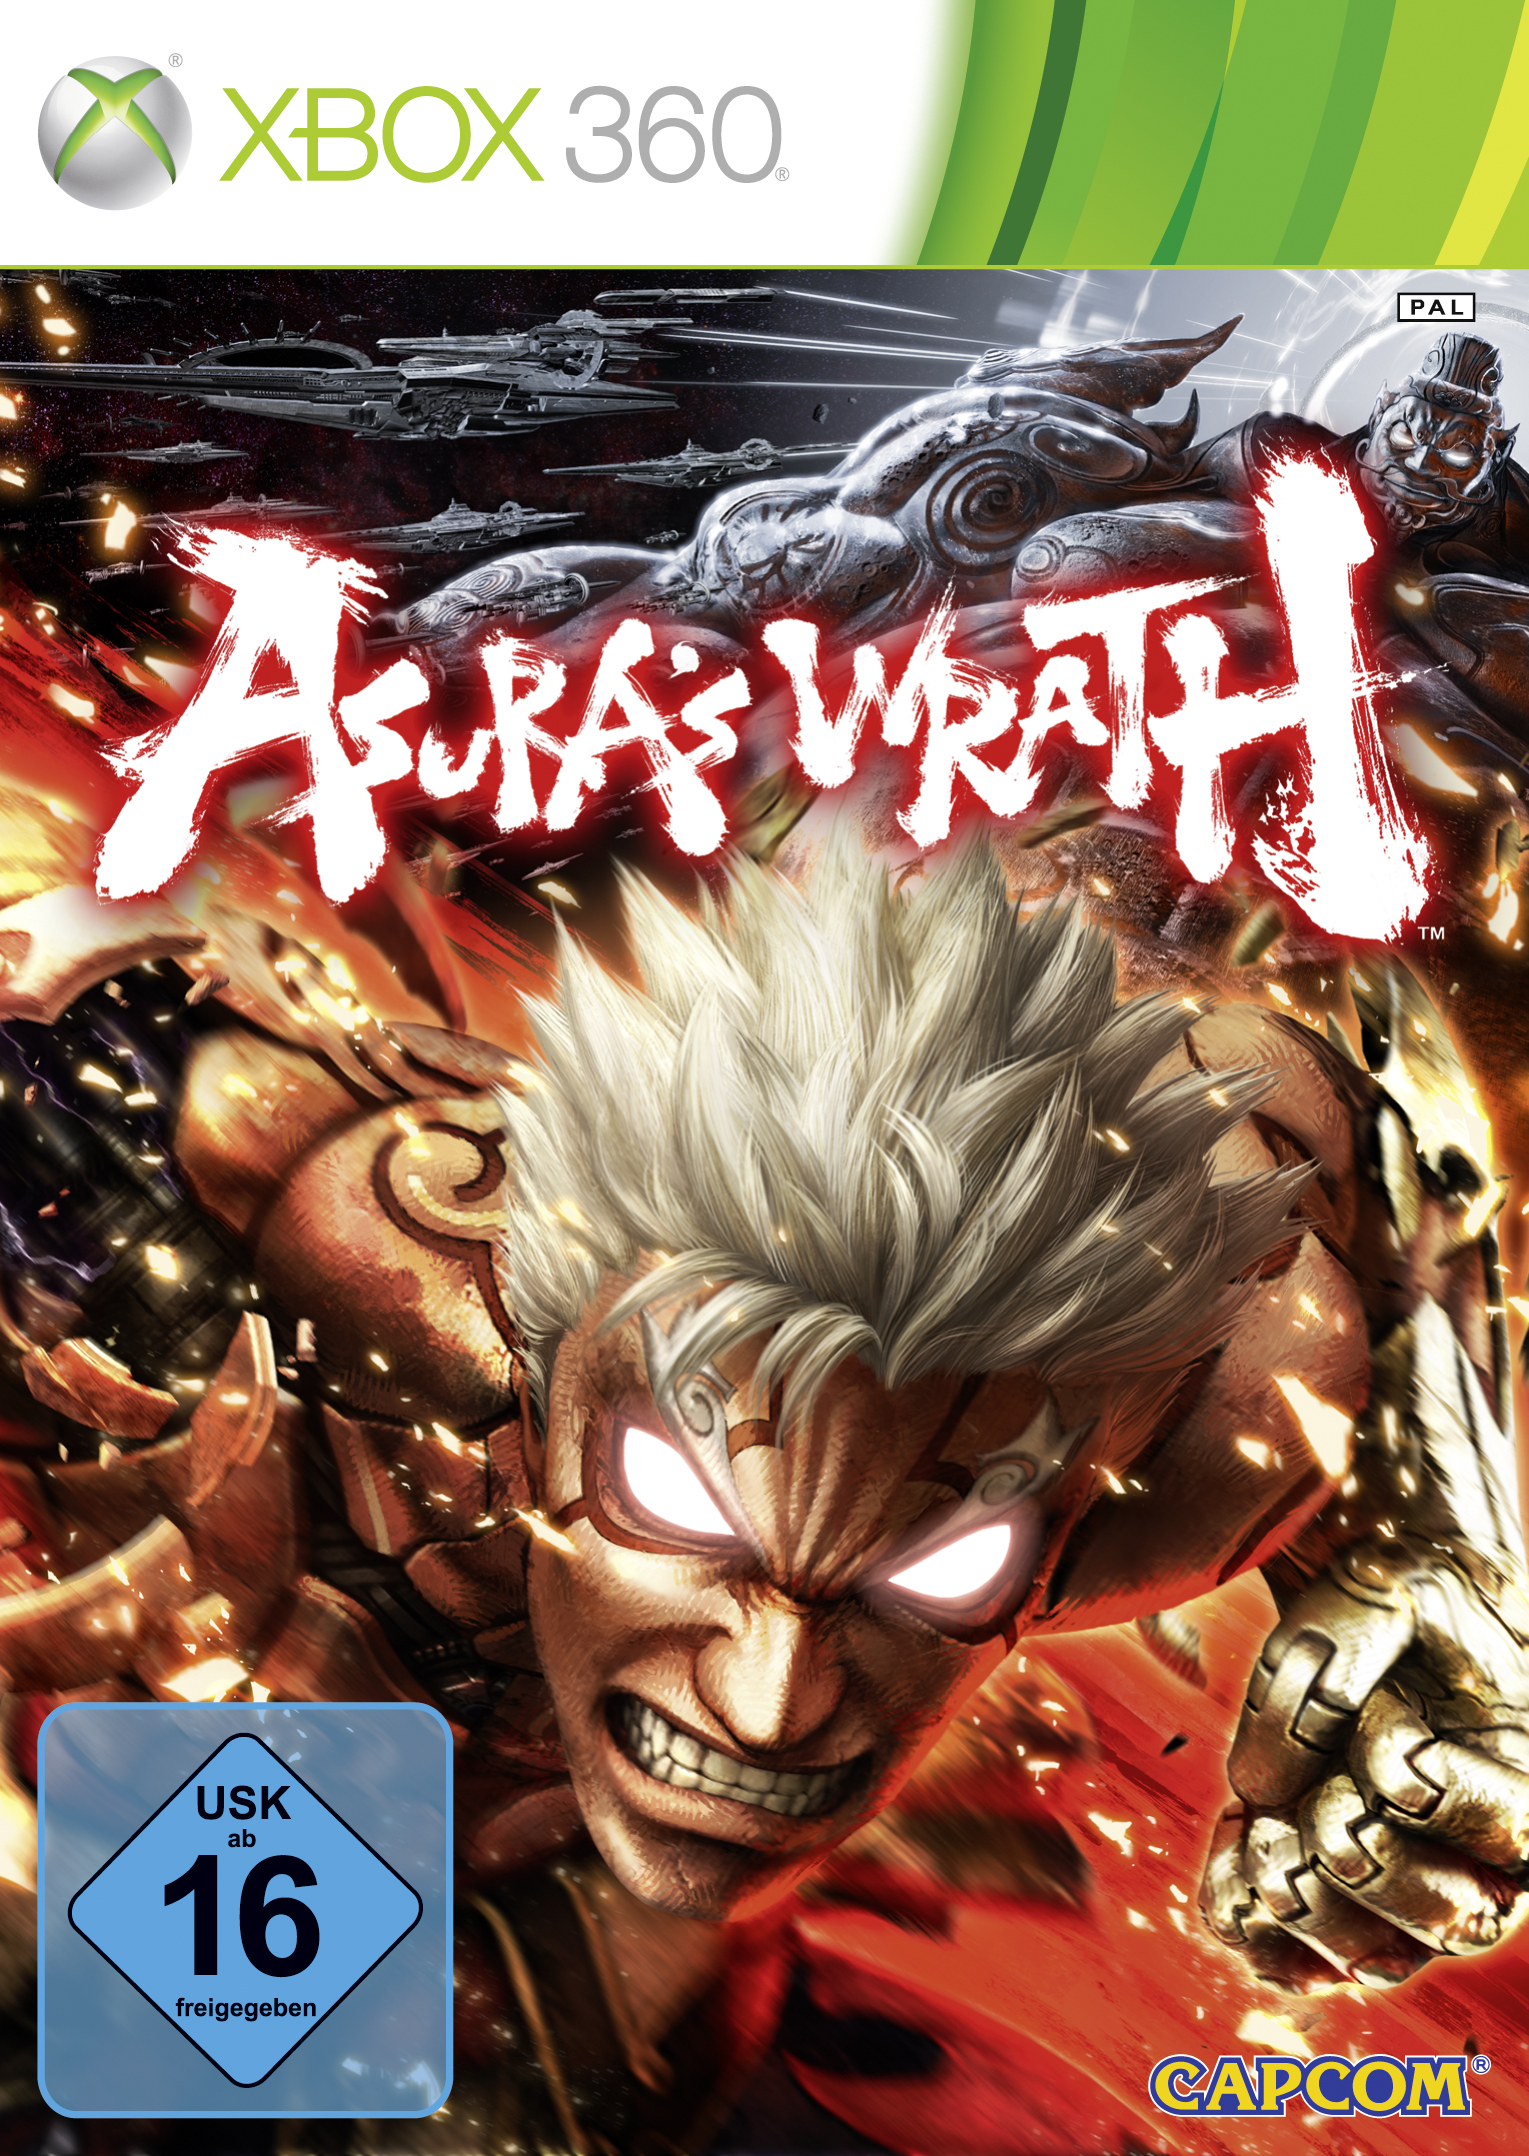 Games im März: Asura's Wrath, Soul Calibur V, Metal Gear Solid HD Collection, Catherine & Resident Evil: Operation Raccoon City